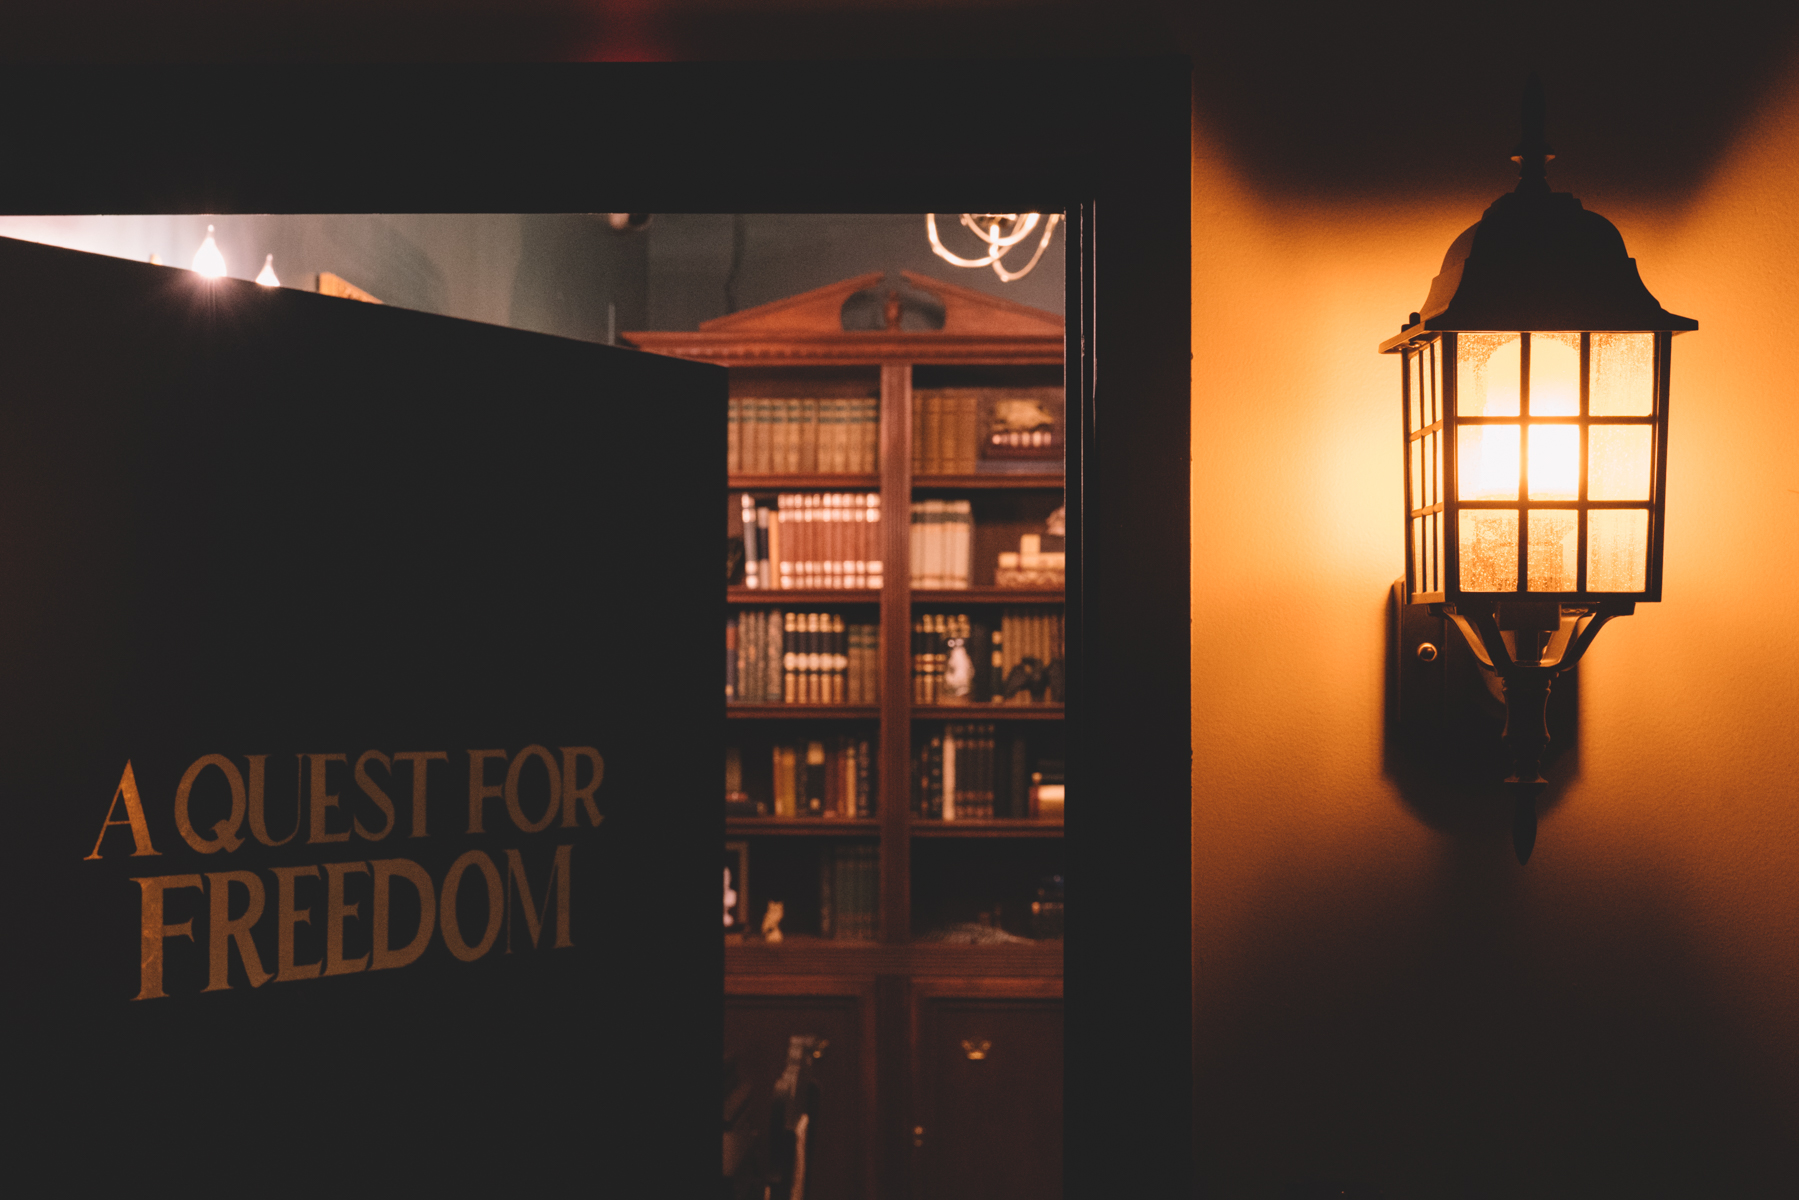 Olde City Escape Games_A Quest for Freedom Room_Entry